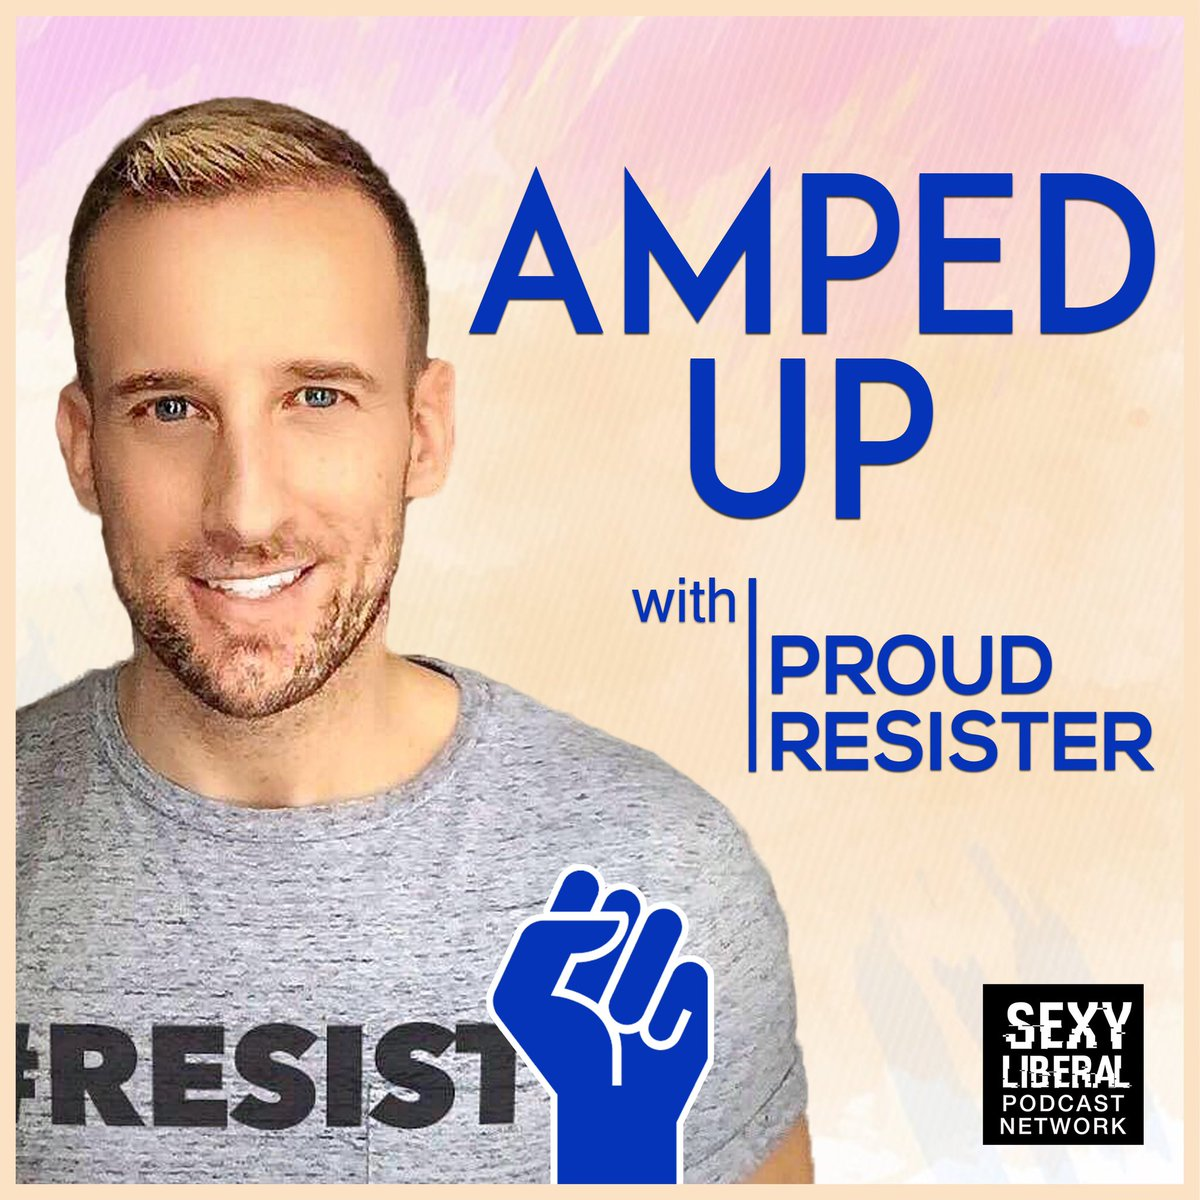 On this week's #AmpedUp podcast, I chat with @ECMcLaughlin about overcoming fear and winning the fight for bold progressive change in America.   Listen for free on @ApplePodcasts or at http://Bit.ly/AmpedUpPodcast. Support the podcast at http://Patreon.com/ProudResister.